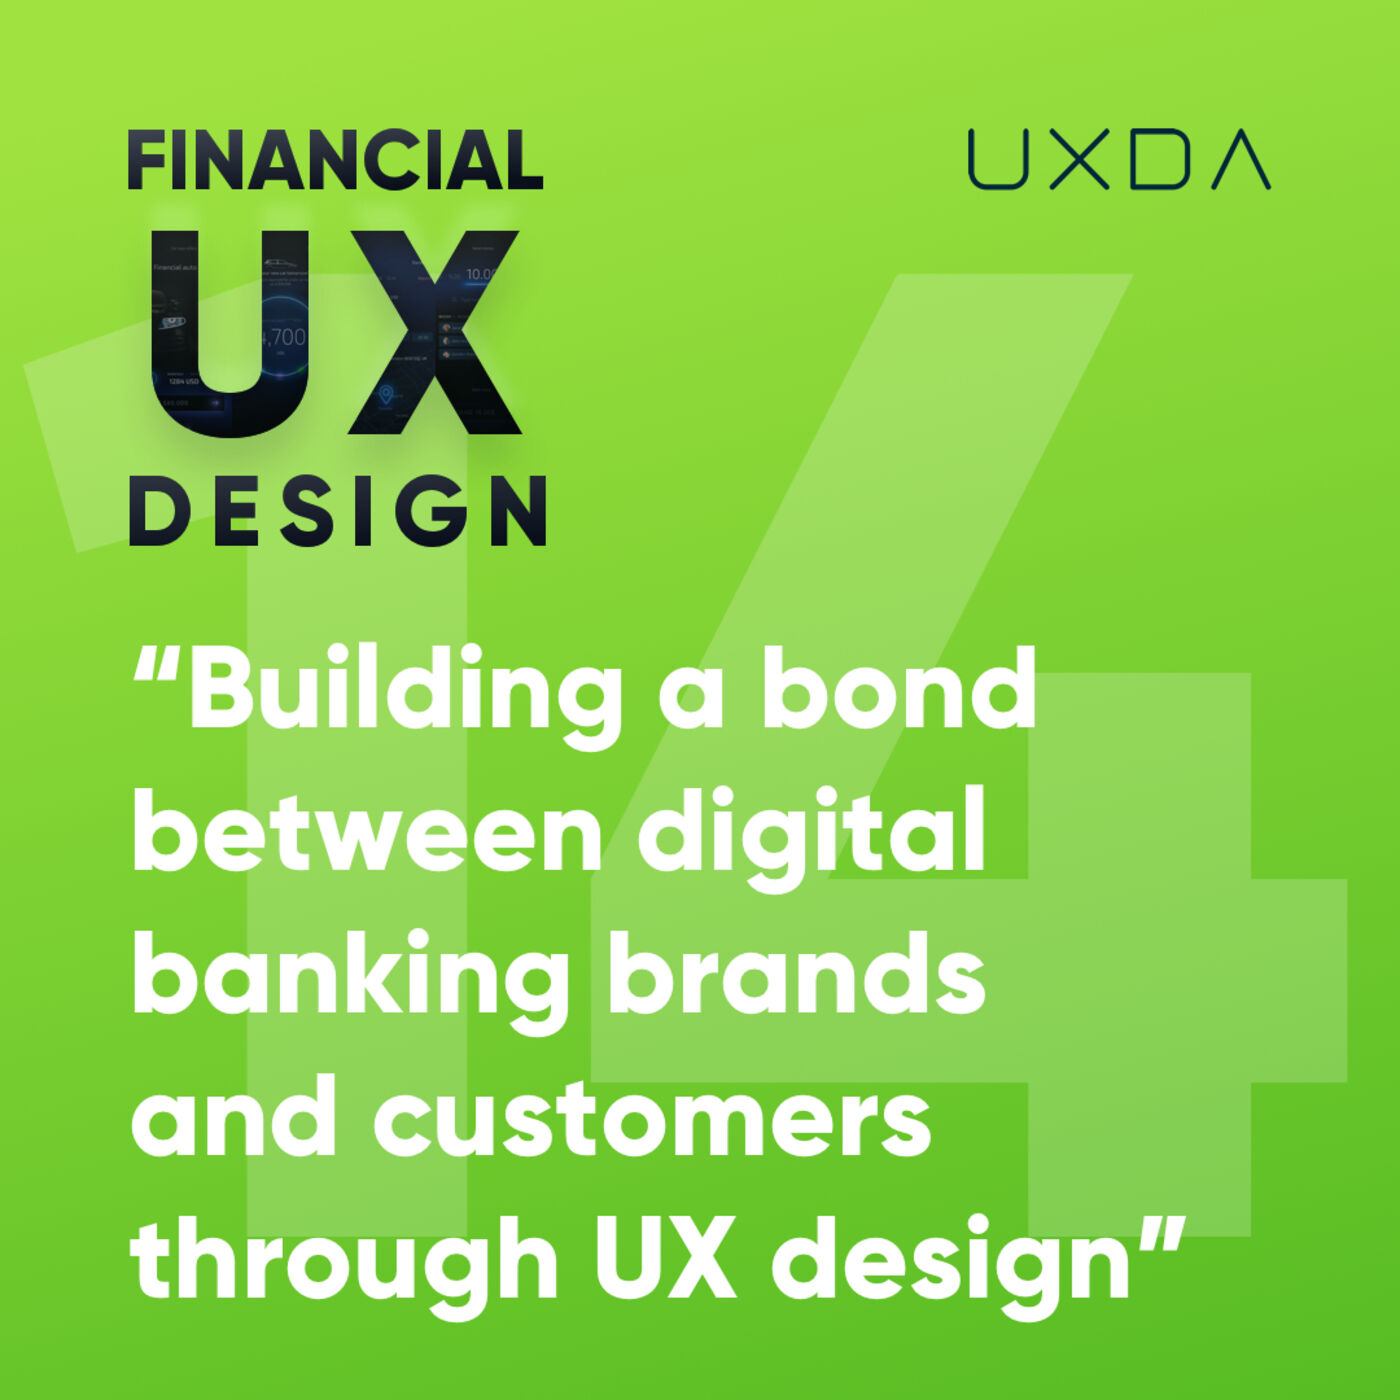 #14 Building a Bond Between Digital Banking Brands and Customers through Financial UX Design